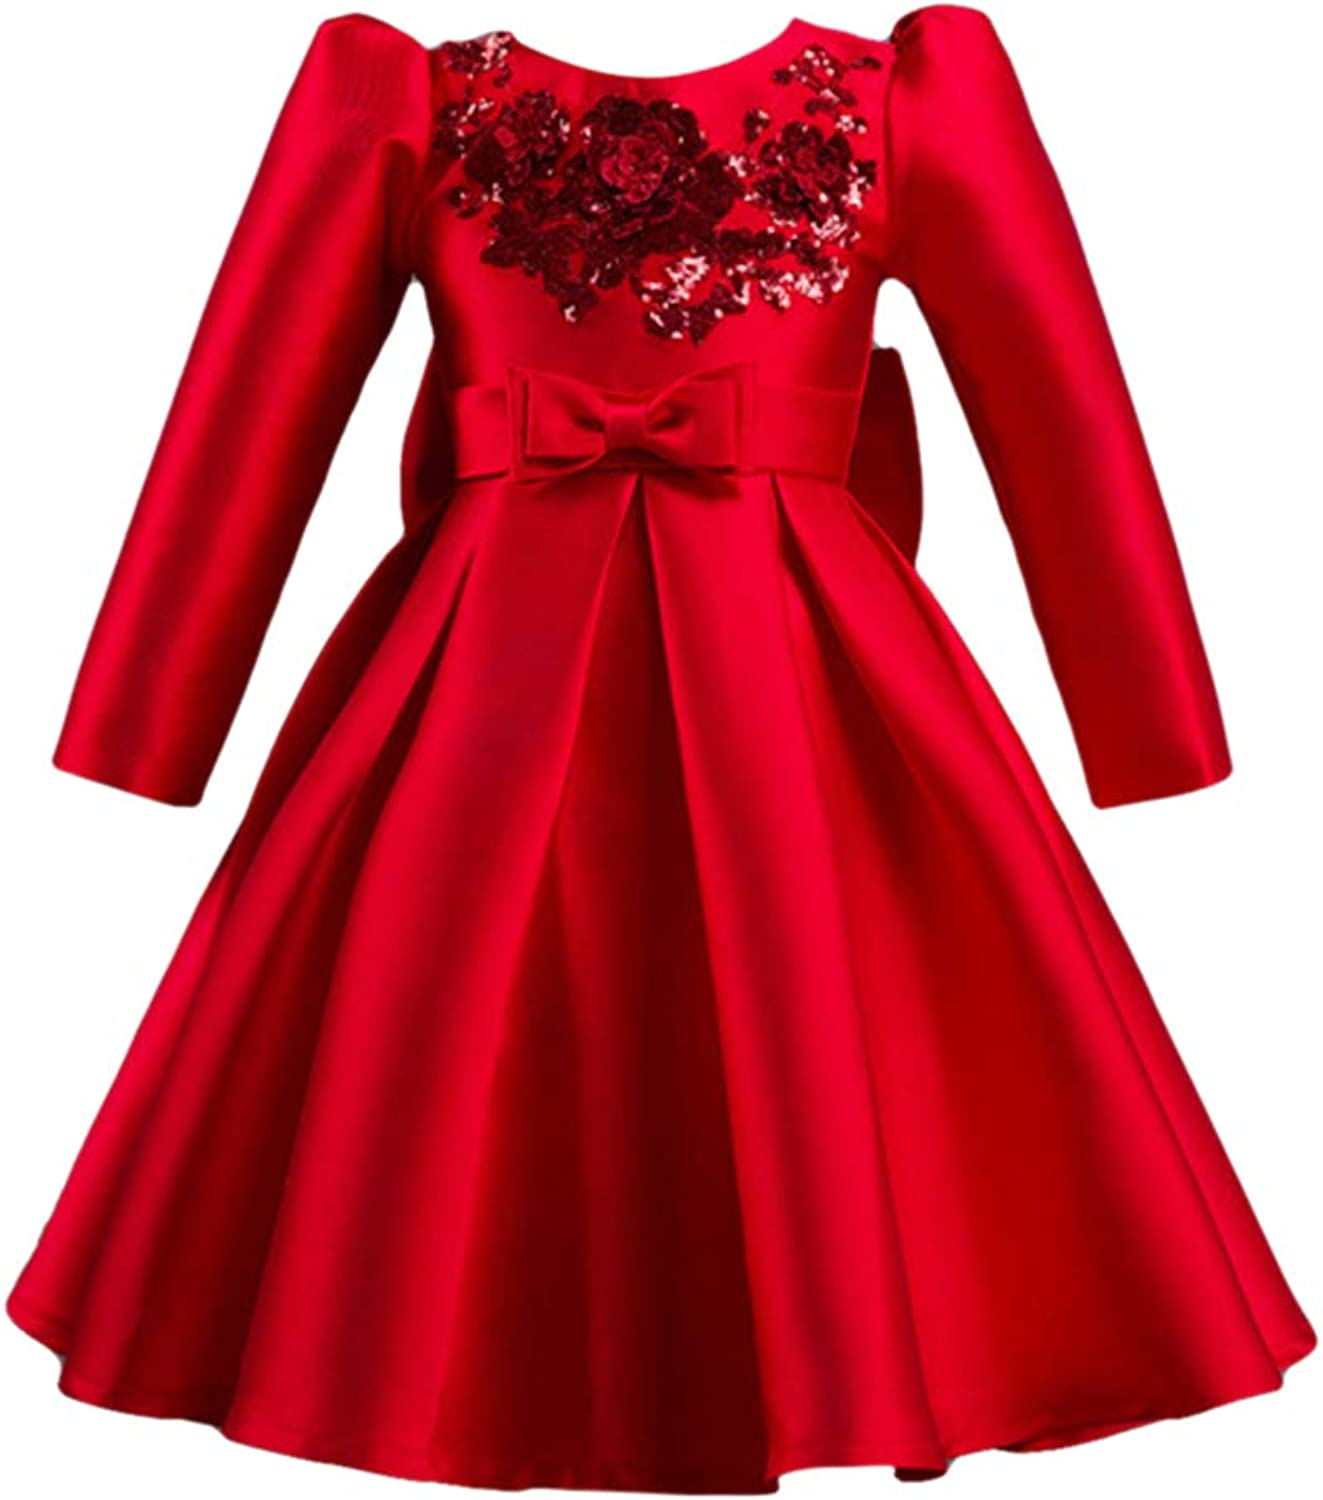 Zhhlinyuan Girls Vintage Sequin Flower Wedding Party Bridesmaid Pageant Dress - High Waist Formal Ball Gown Dresses with Big Bowknot